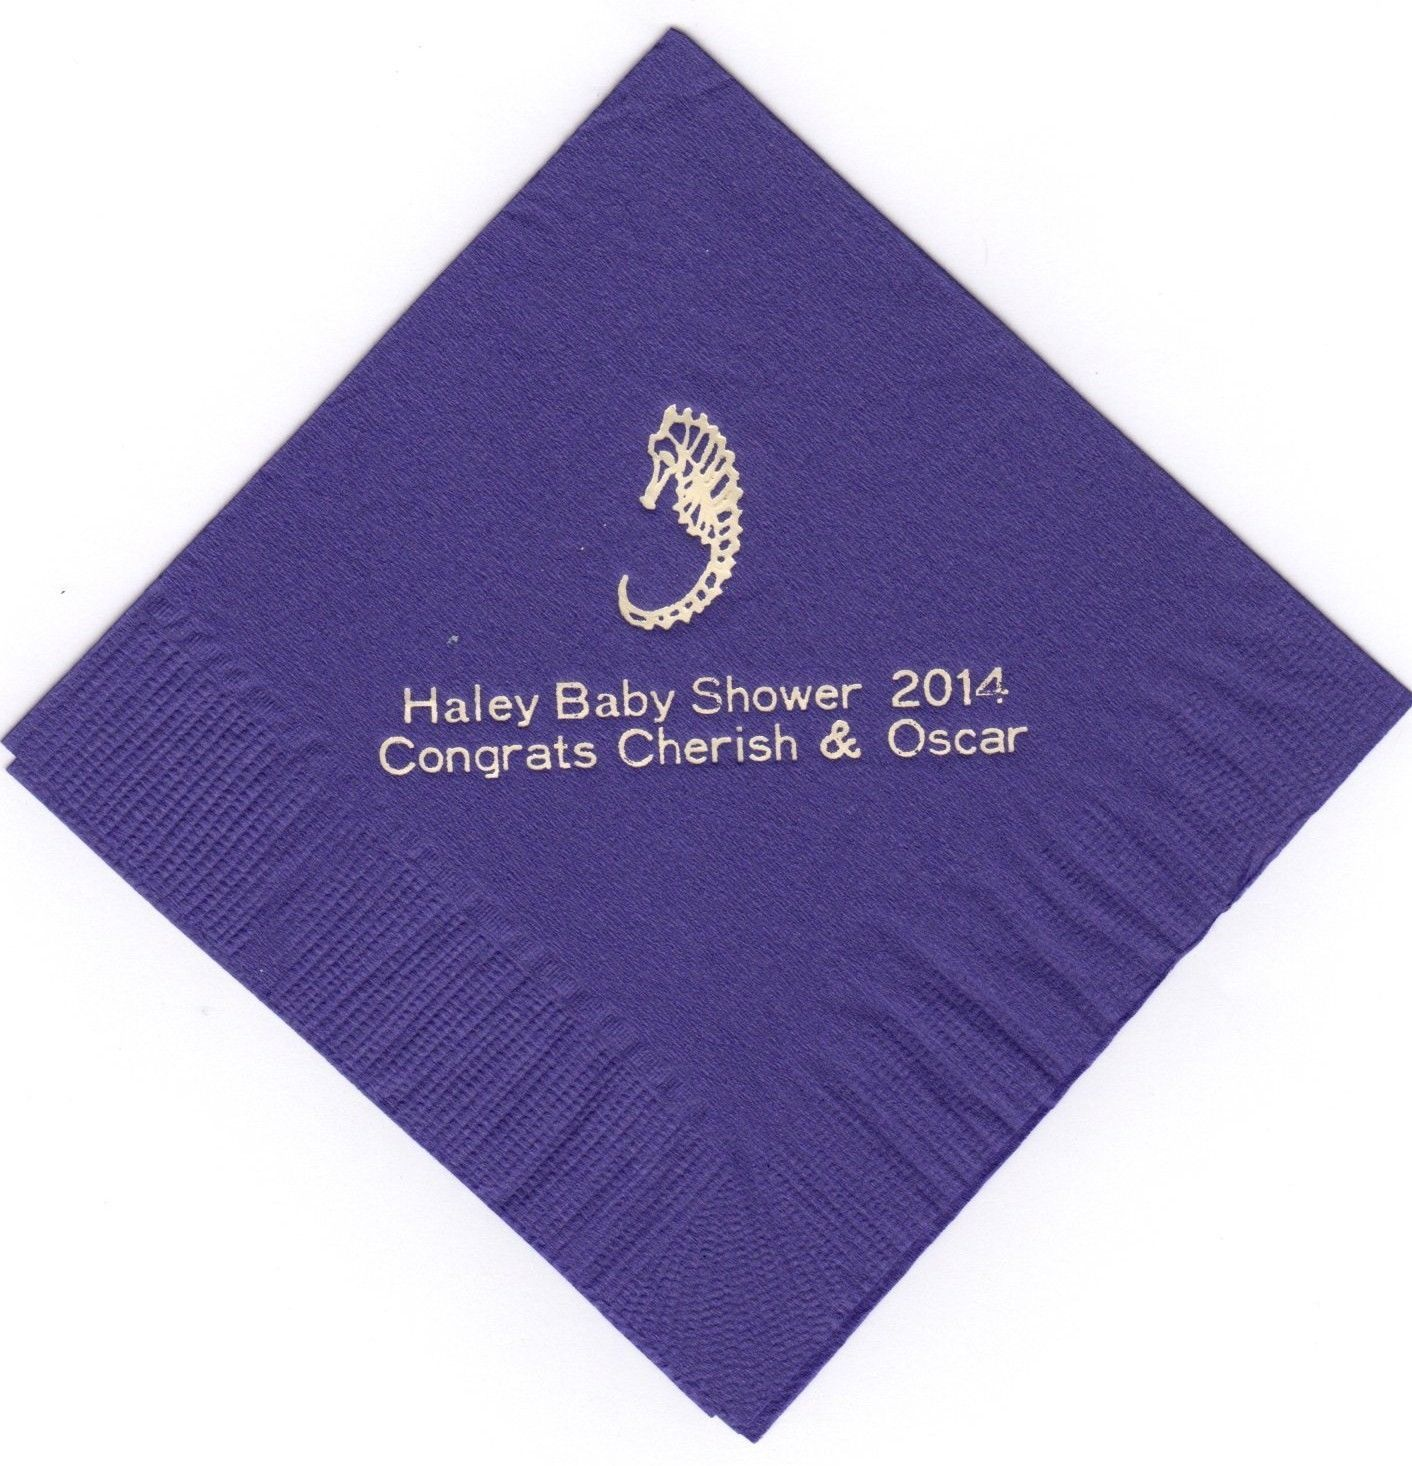 SEA HORSE 50 Personalized printed LUNCHEON DINNER napkins